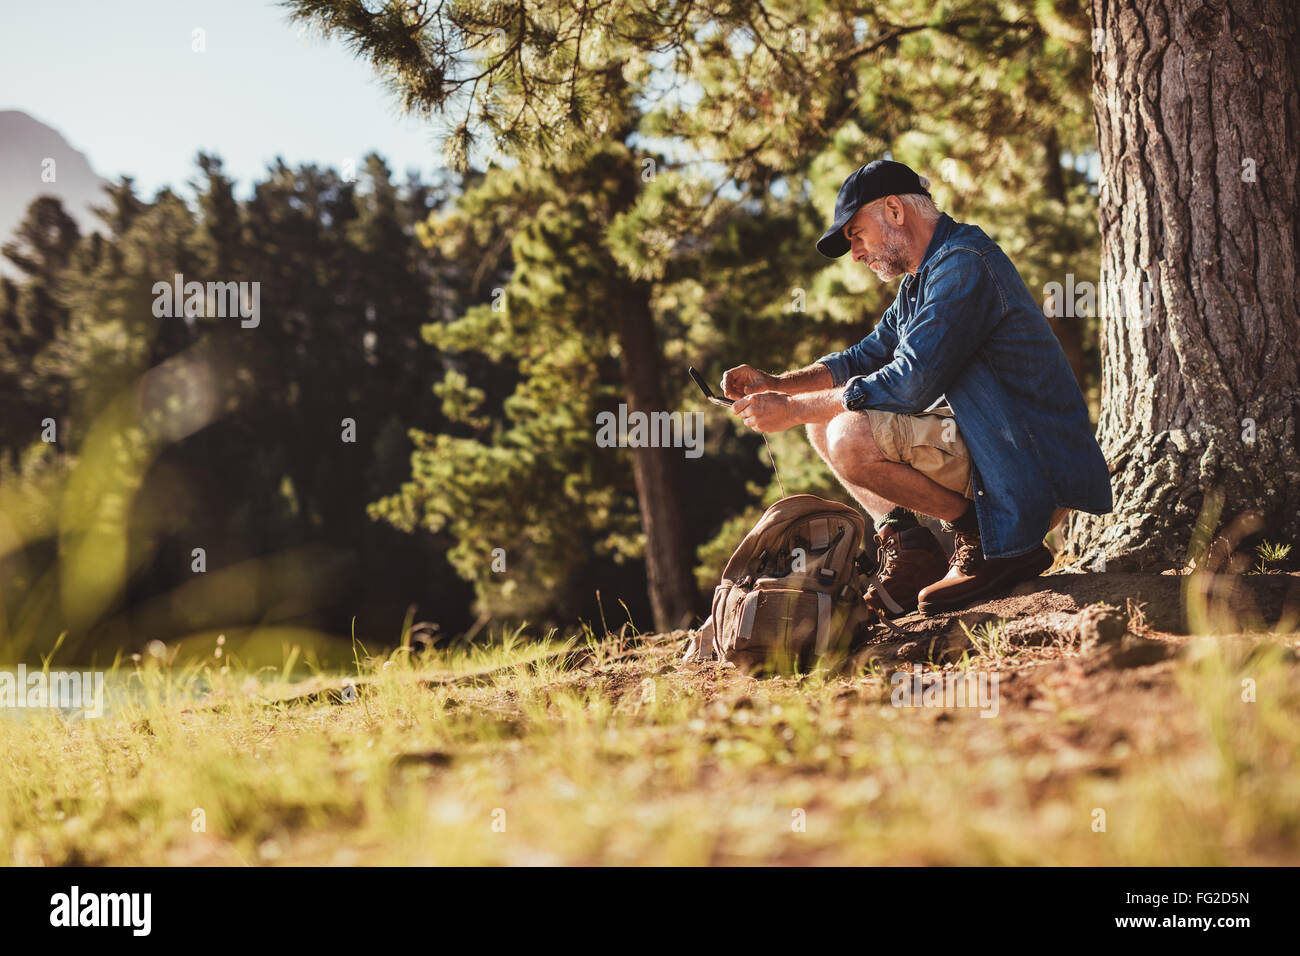 Portrait of senior hiker checking his compass. Mature man sitting by a tree searching for direction. - Stock Image